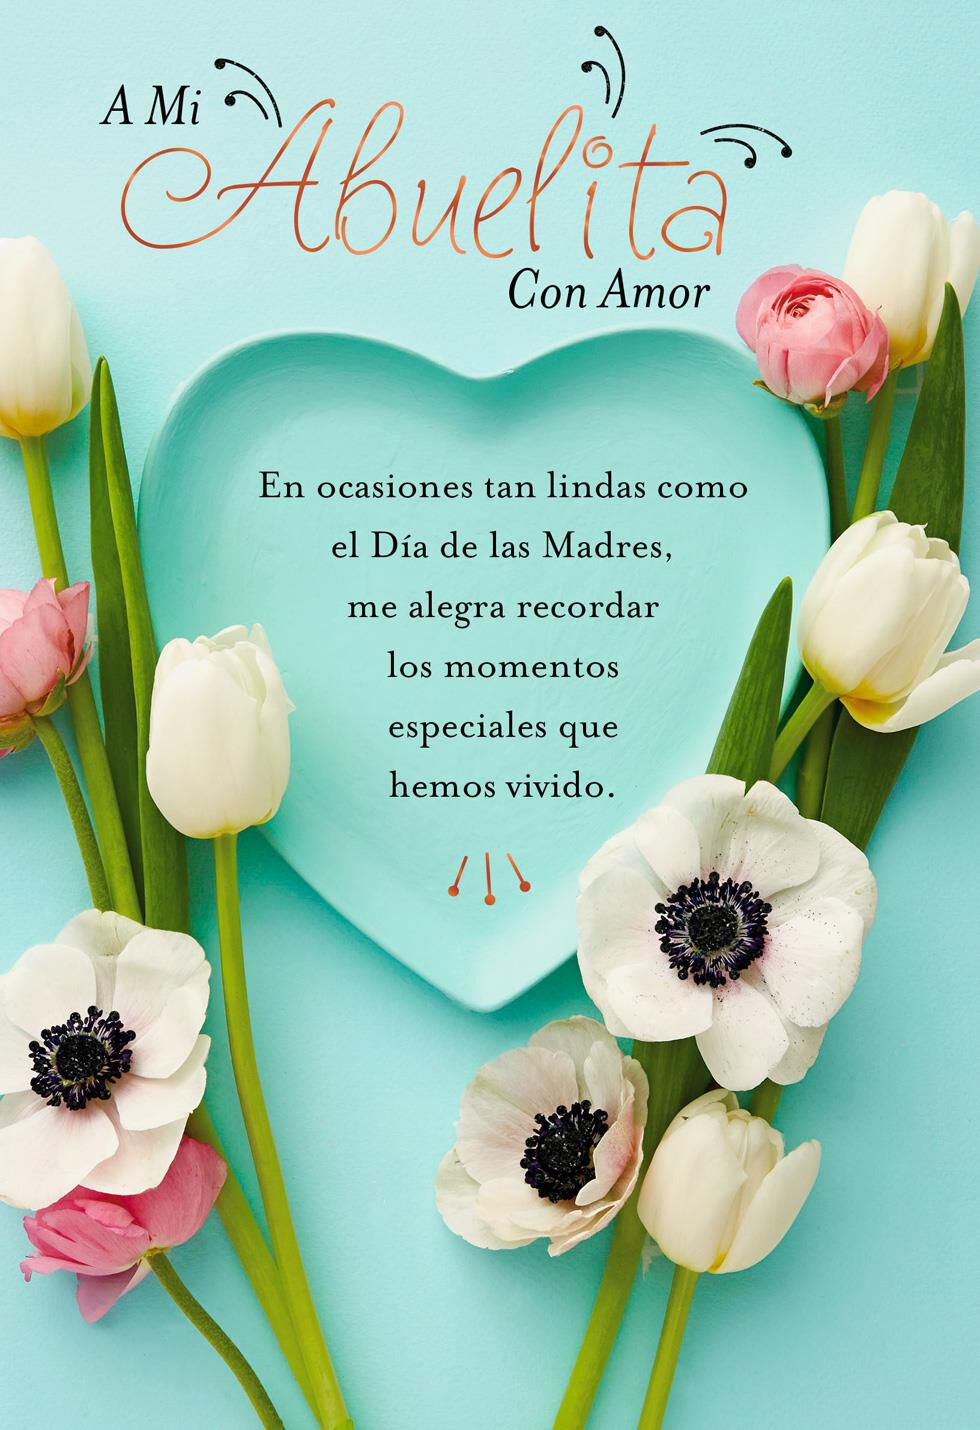 Special place in my heart spanish language mothers day card for special place in my heart spanish language mothers day card for grandmother greeting cards hallmark izmirmasajfo